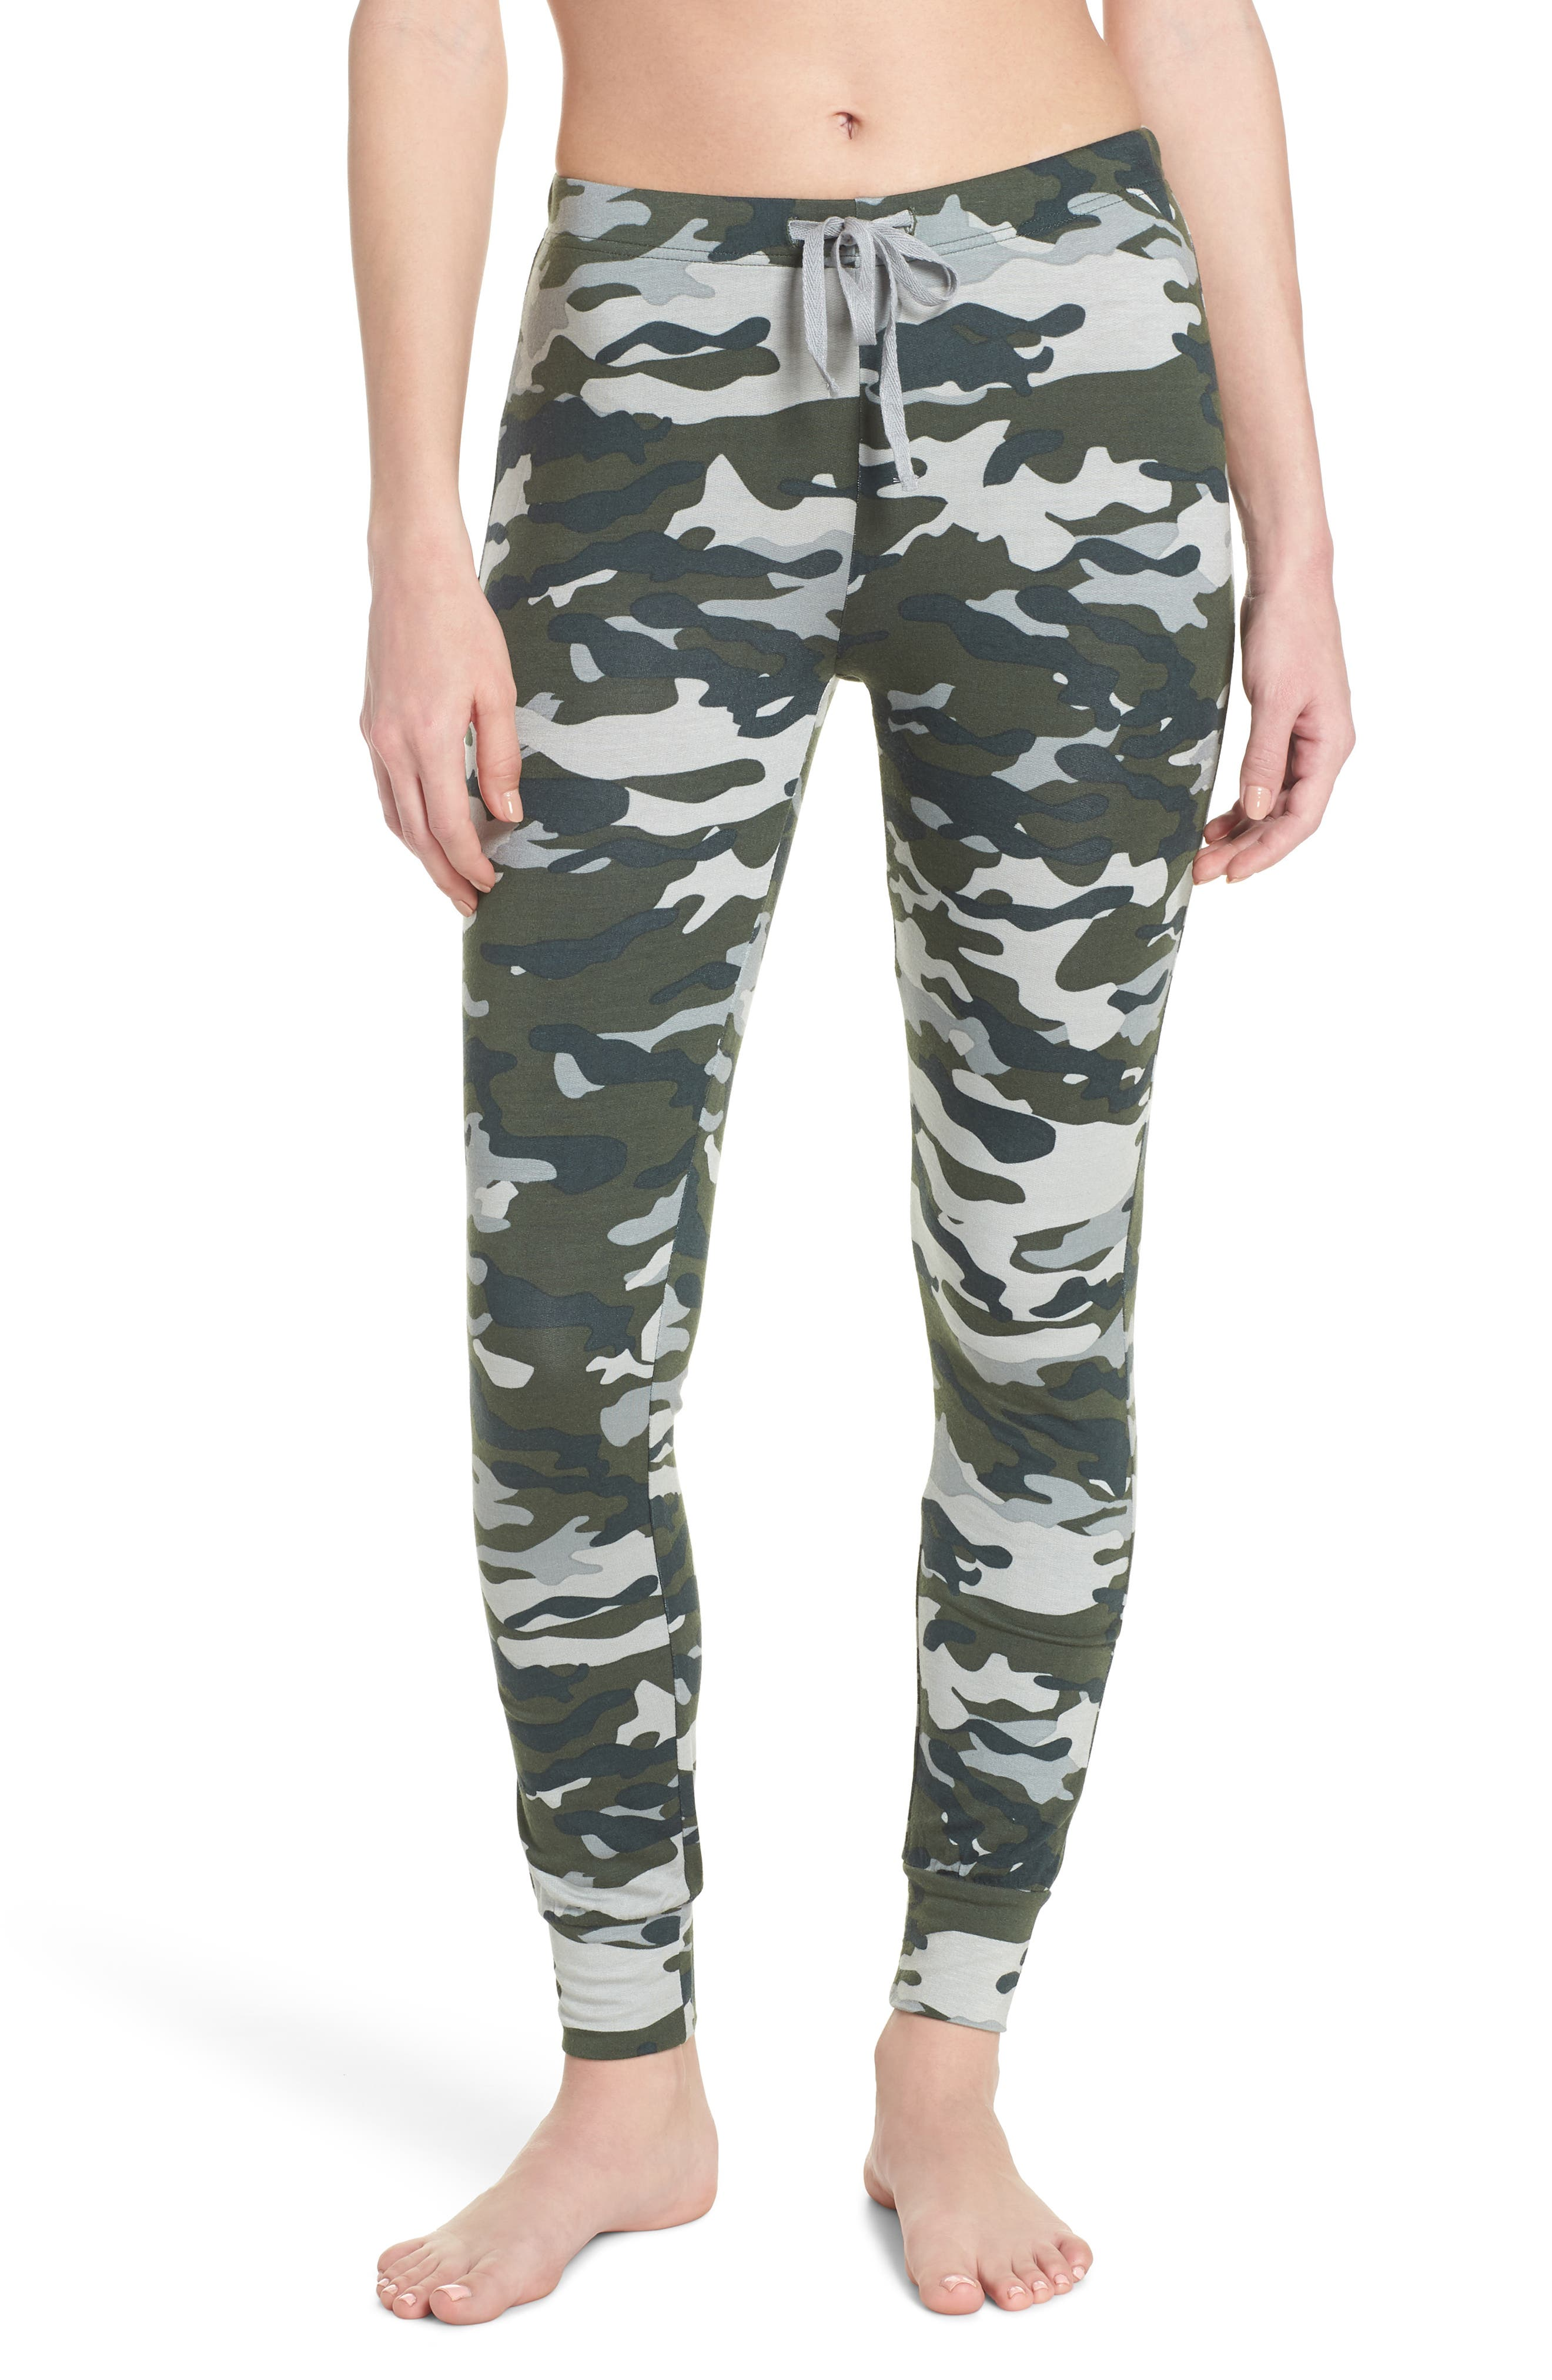 Kickin' It French Terry Lounge Pants,                             Main thumbnail 1, color,                             Army